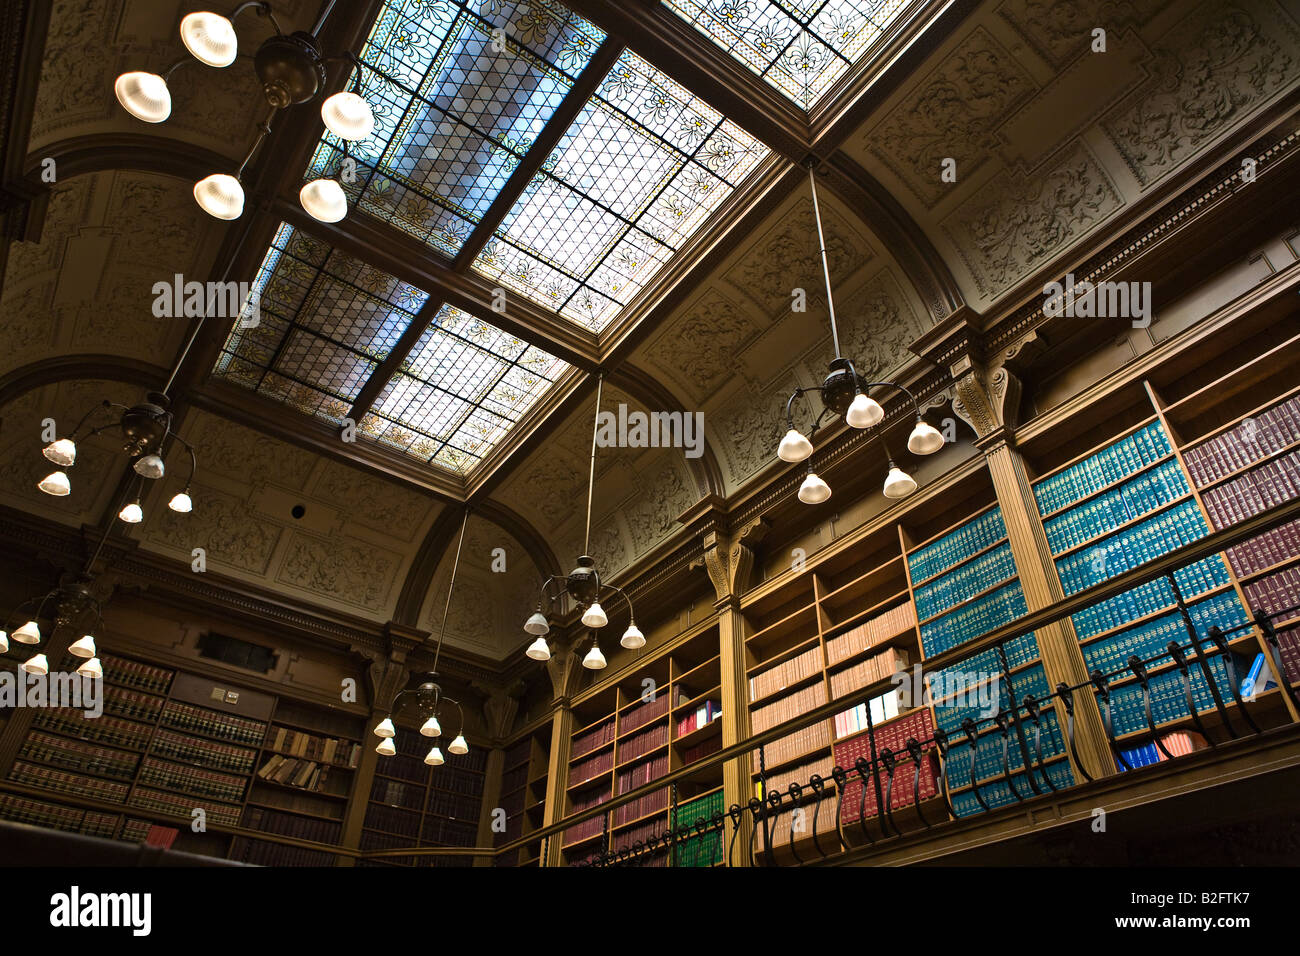 Toronto Osgoode Hall American Law Library interior - Stock Image